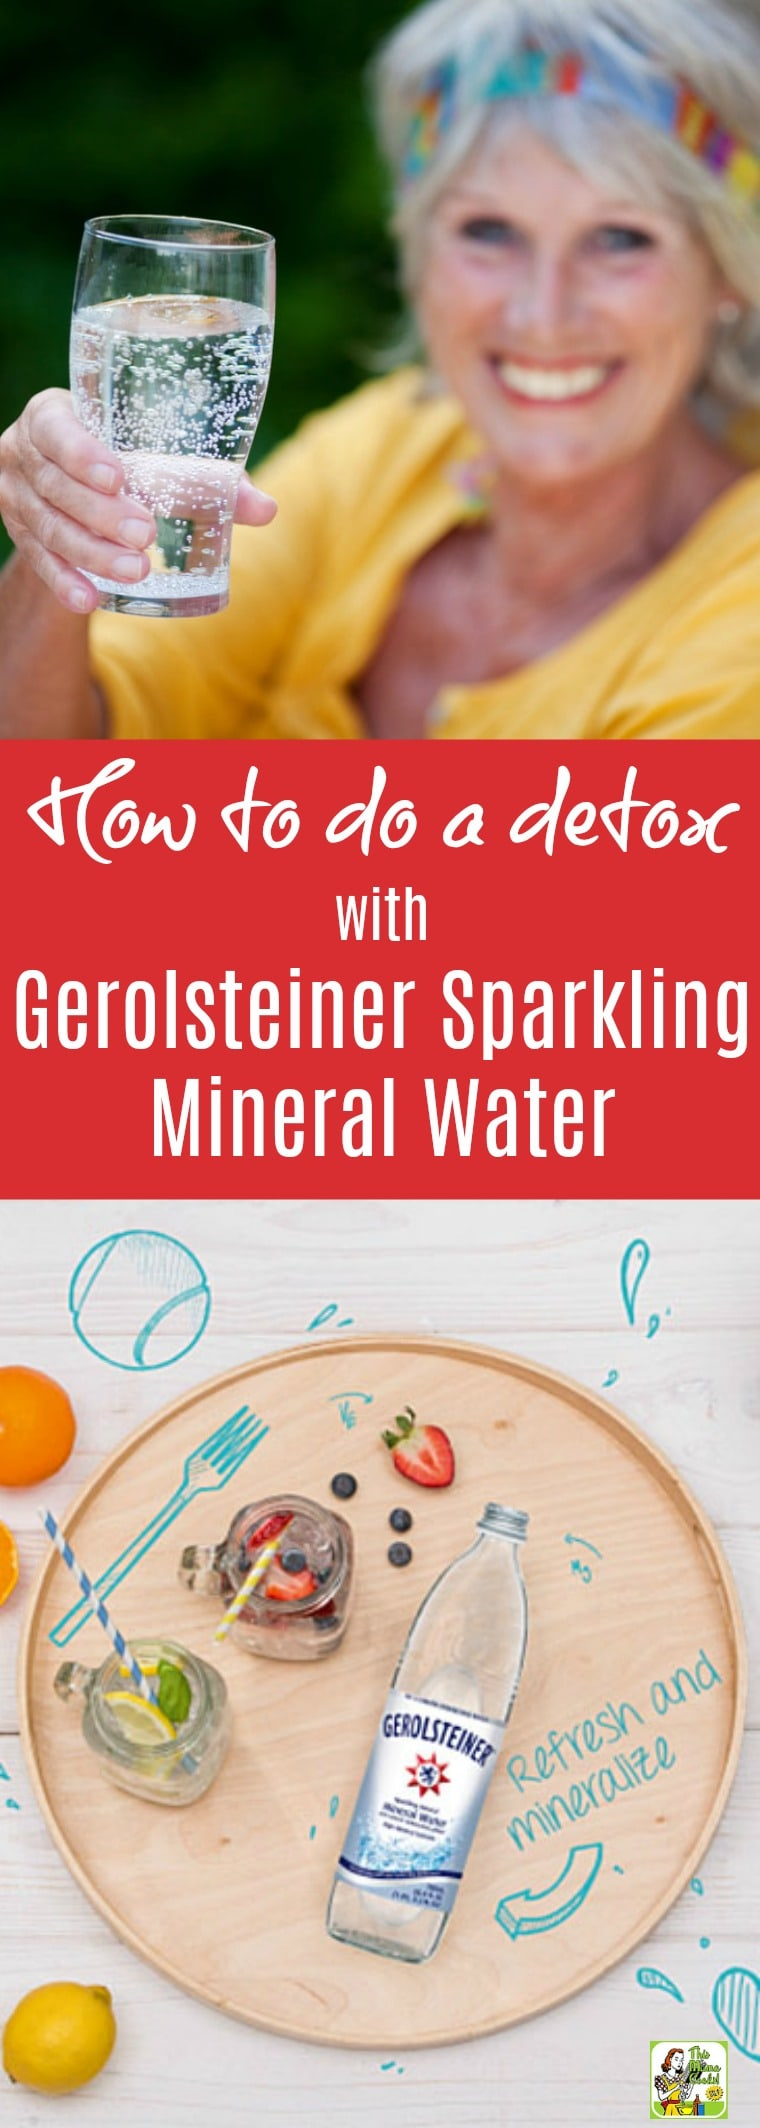 How to do a detox with Gerolsteiner Sparkling Mineral Water. Have you wondered how to do a detox cleanse but didn't know how? Or maybe you thought detoxes were super complicated involving all kinds of special powders and juices? Well, then the Gerolsteiner's Sparkling Detox challenge is for you! #GerolsteinerUSA #sparklingdetox #sponsored